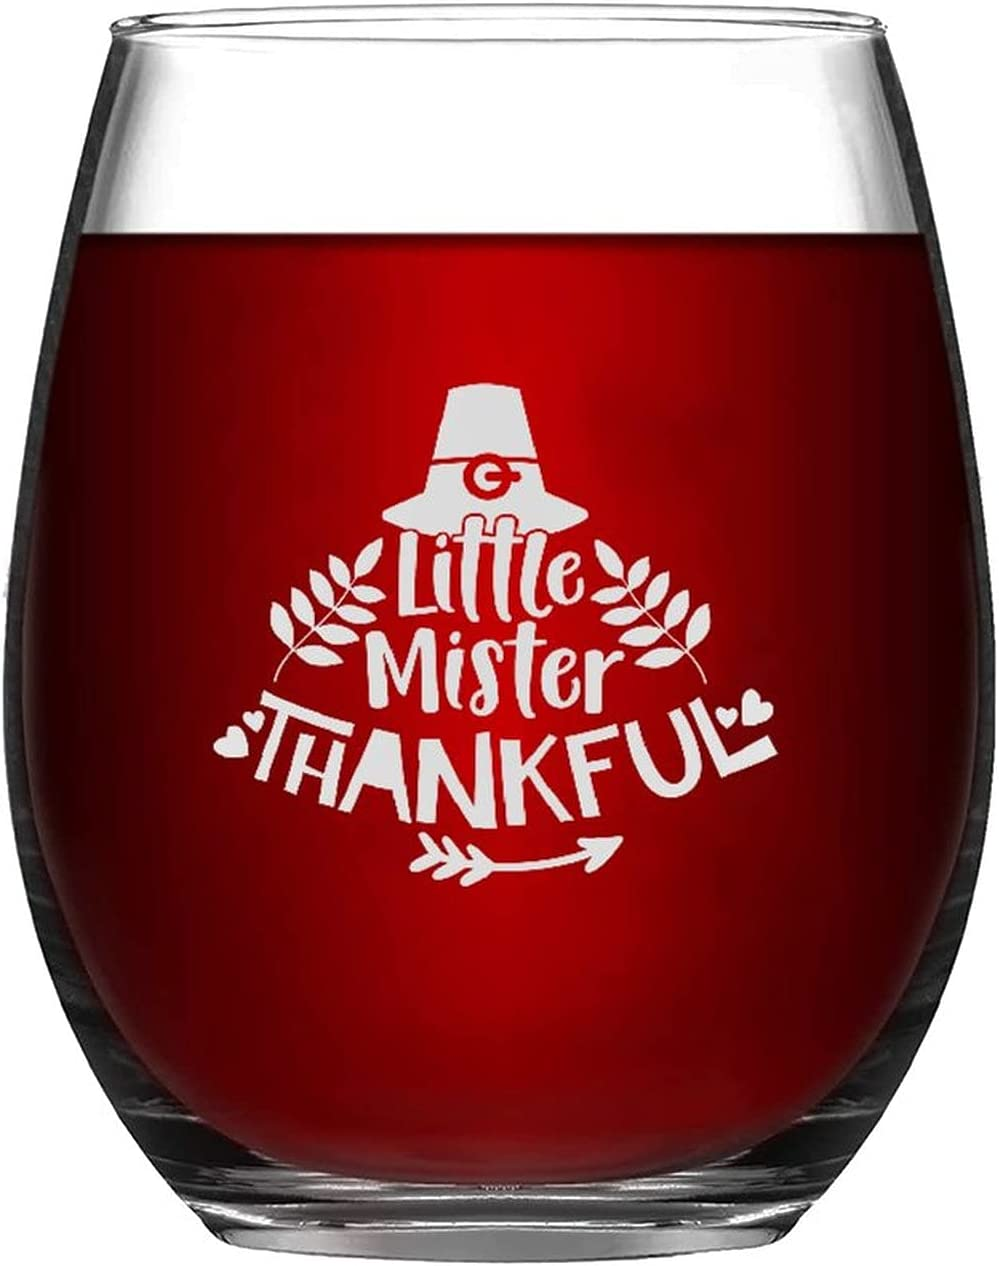 Stemless Wine Glasses Inexpensive Little Mister Engraved Thankful Al sold out. Laser Glas